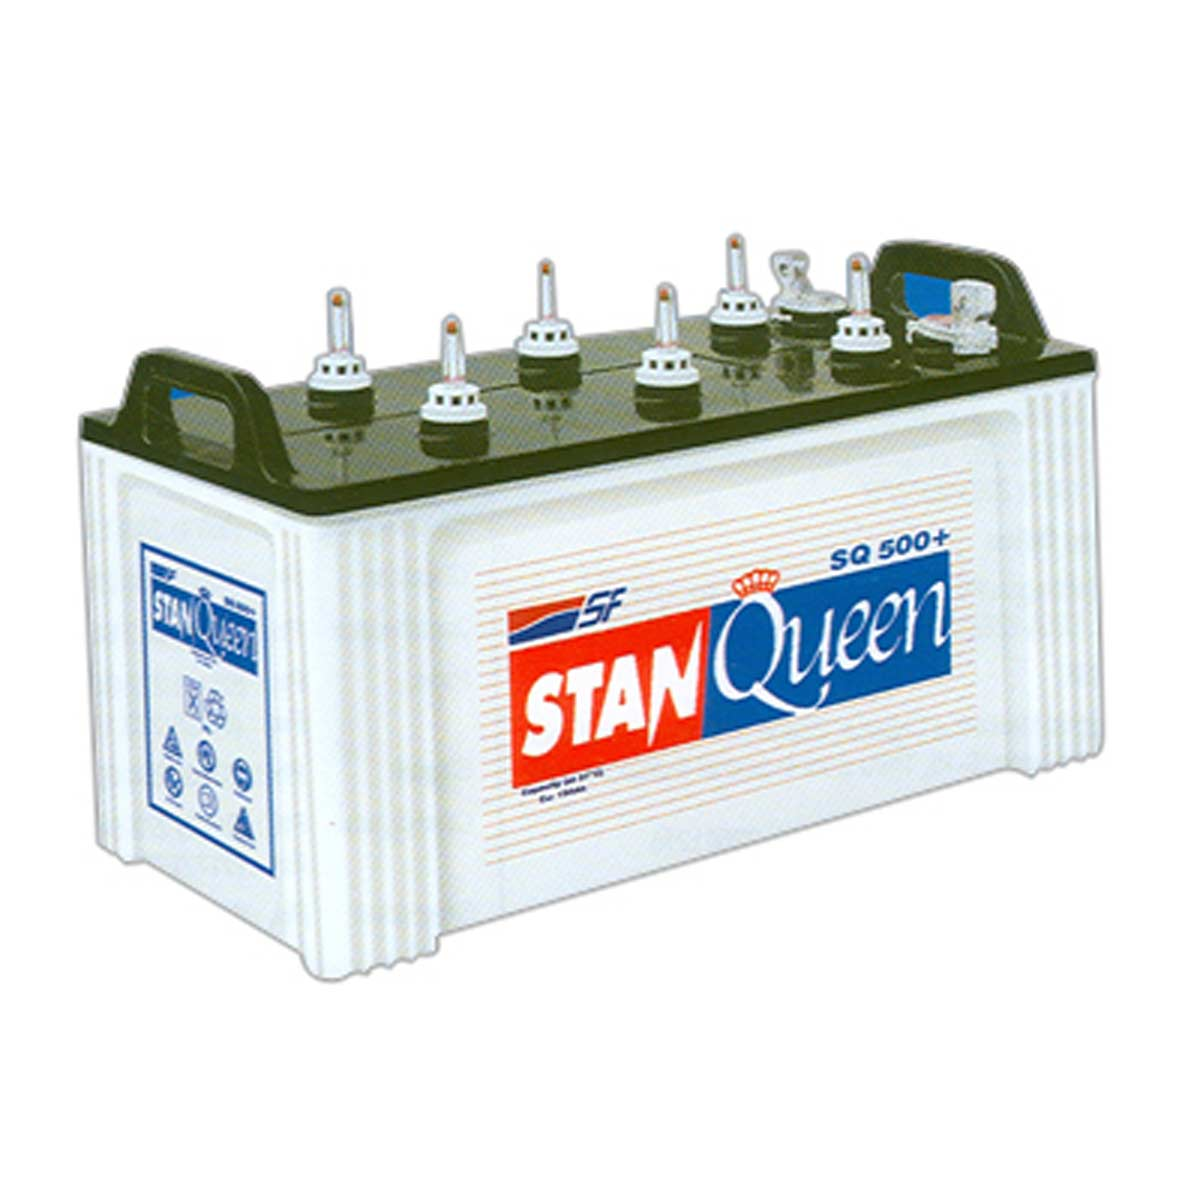 Exide SF Stanqueen Inverter Battery in chennai